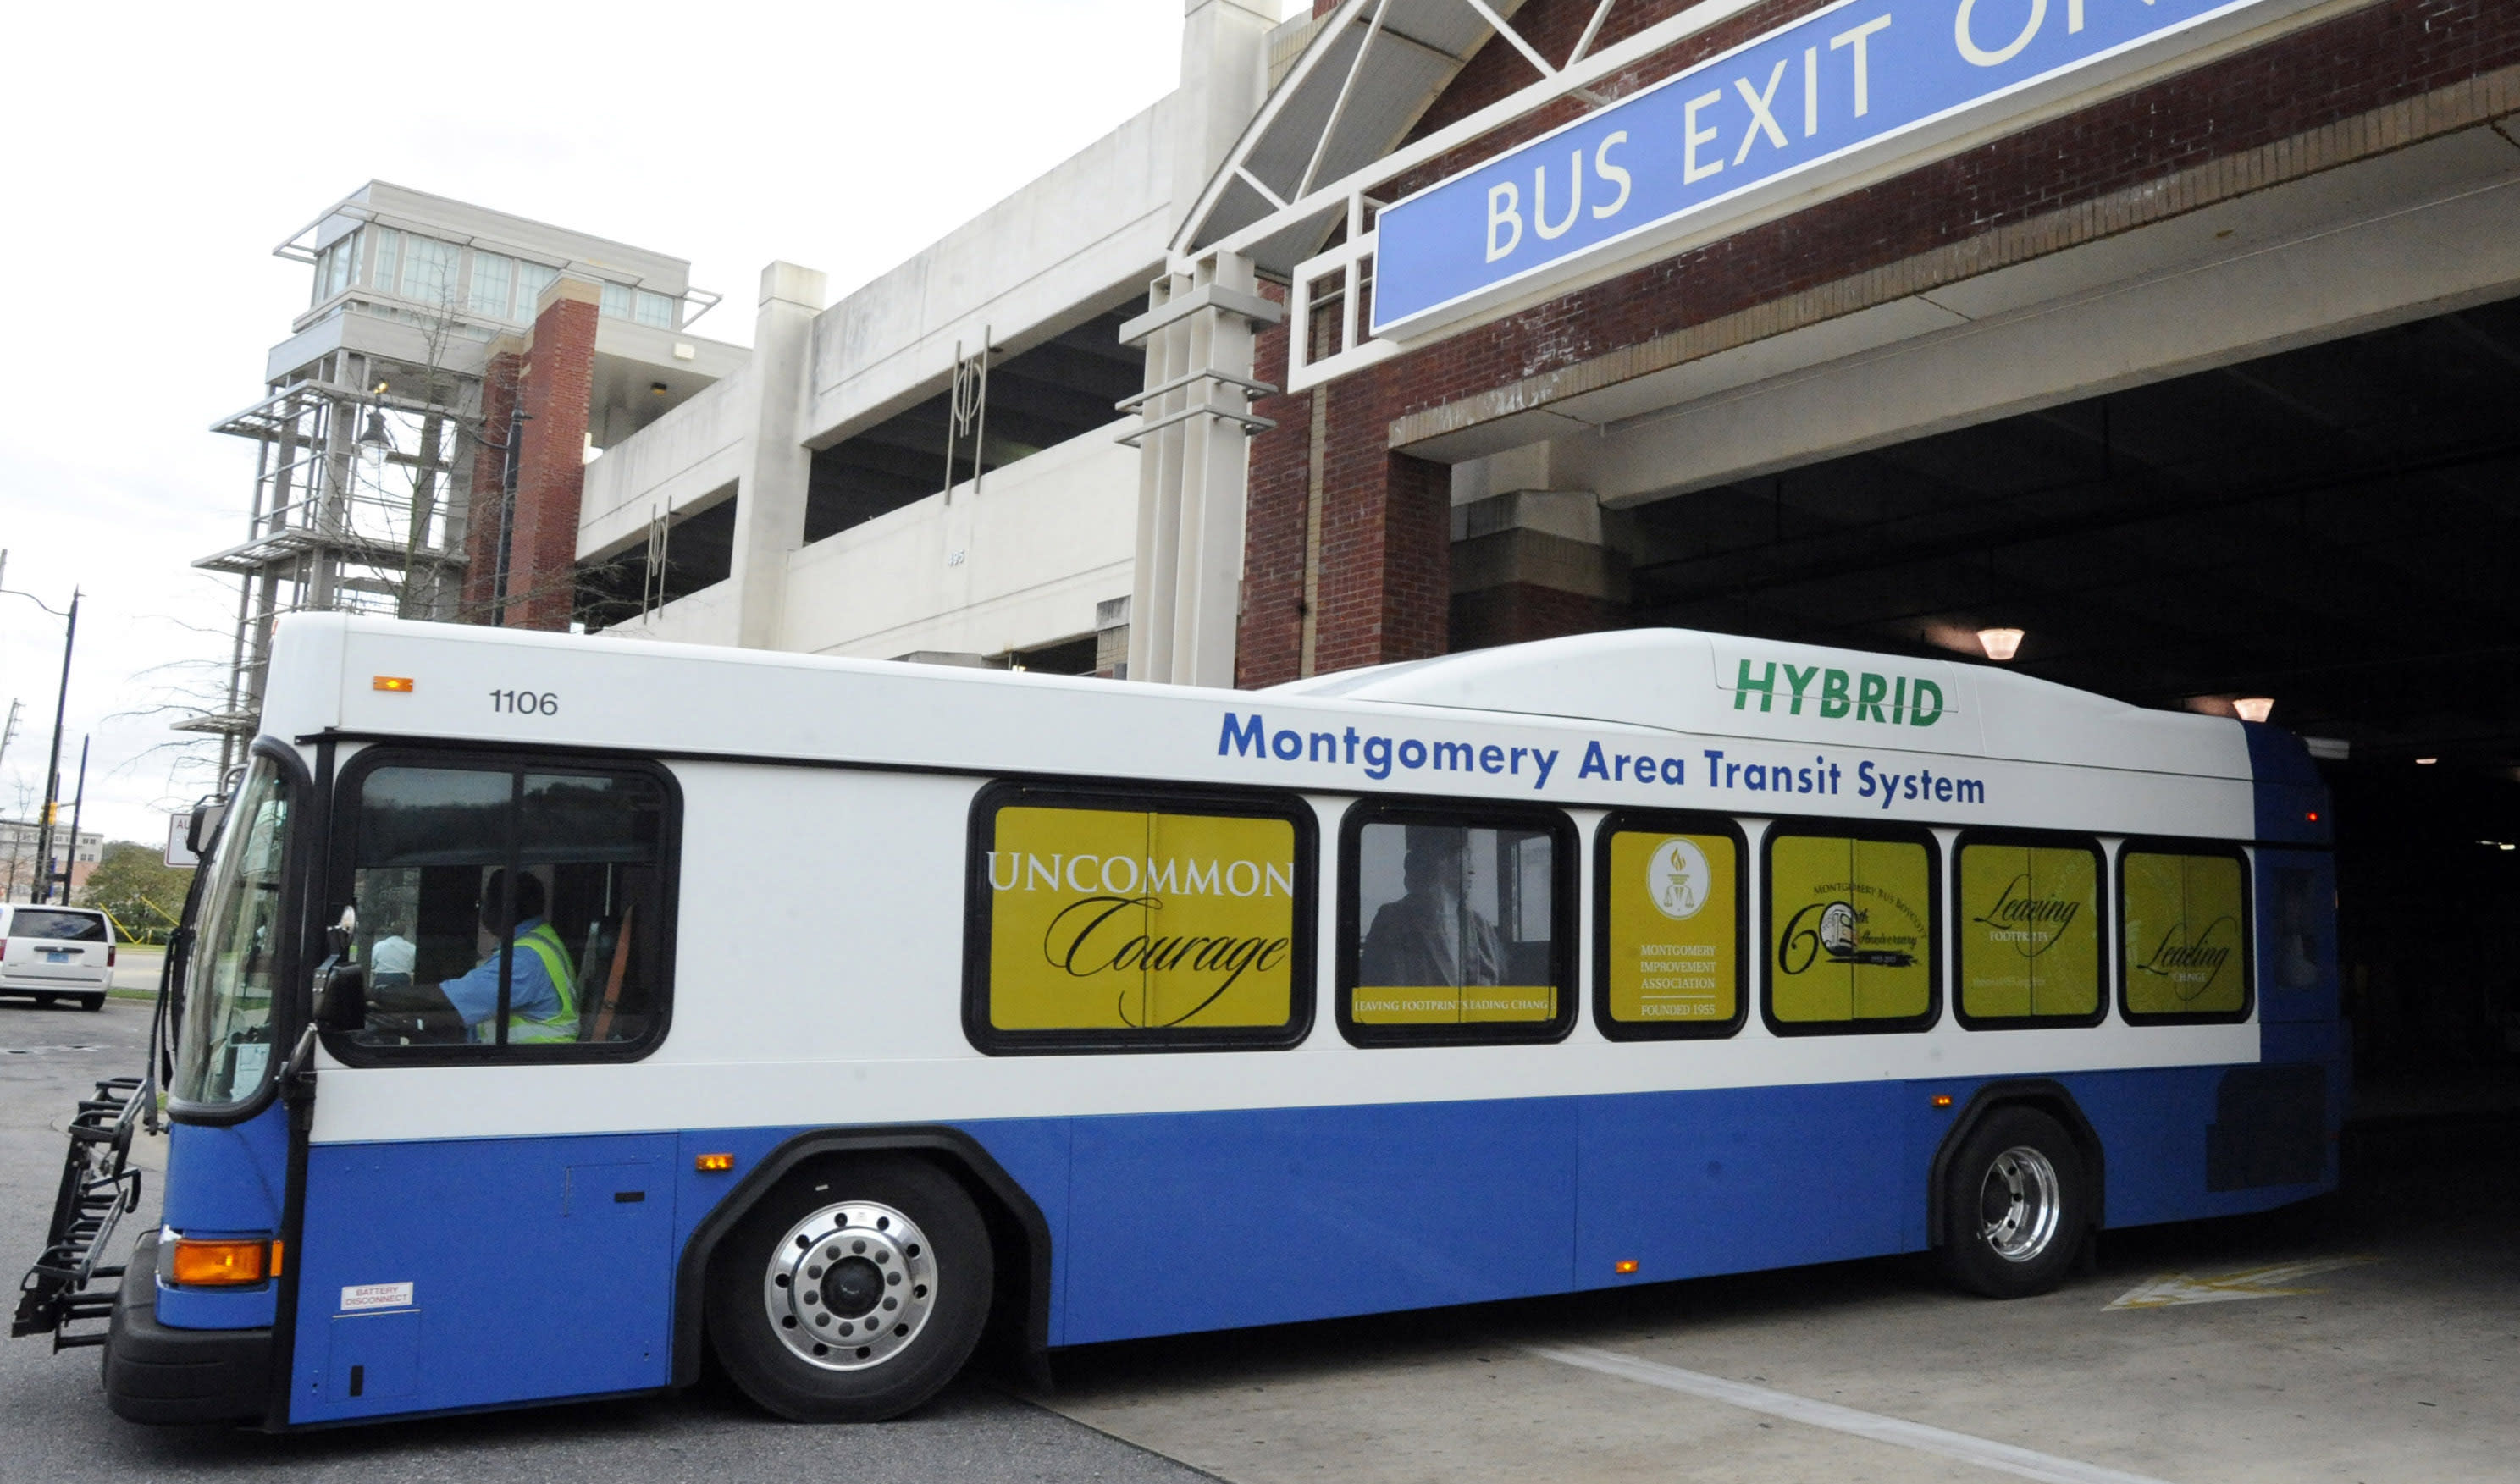 60 years after boycott, using Montgomery bus can be trying